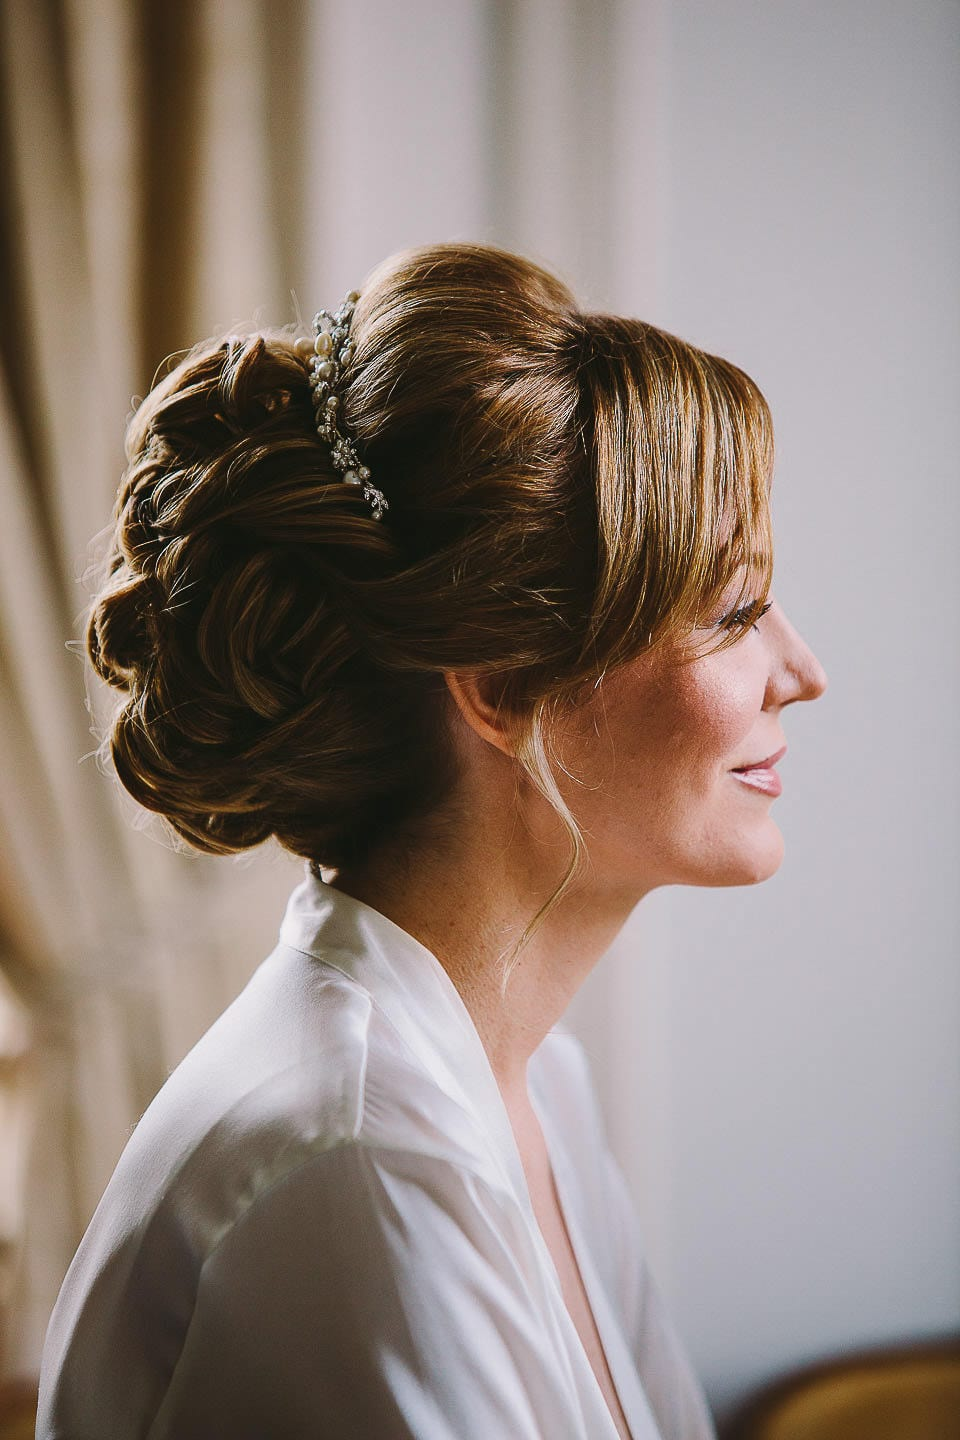 Profile portrait of the bride after having her hair and make up finished